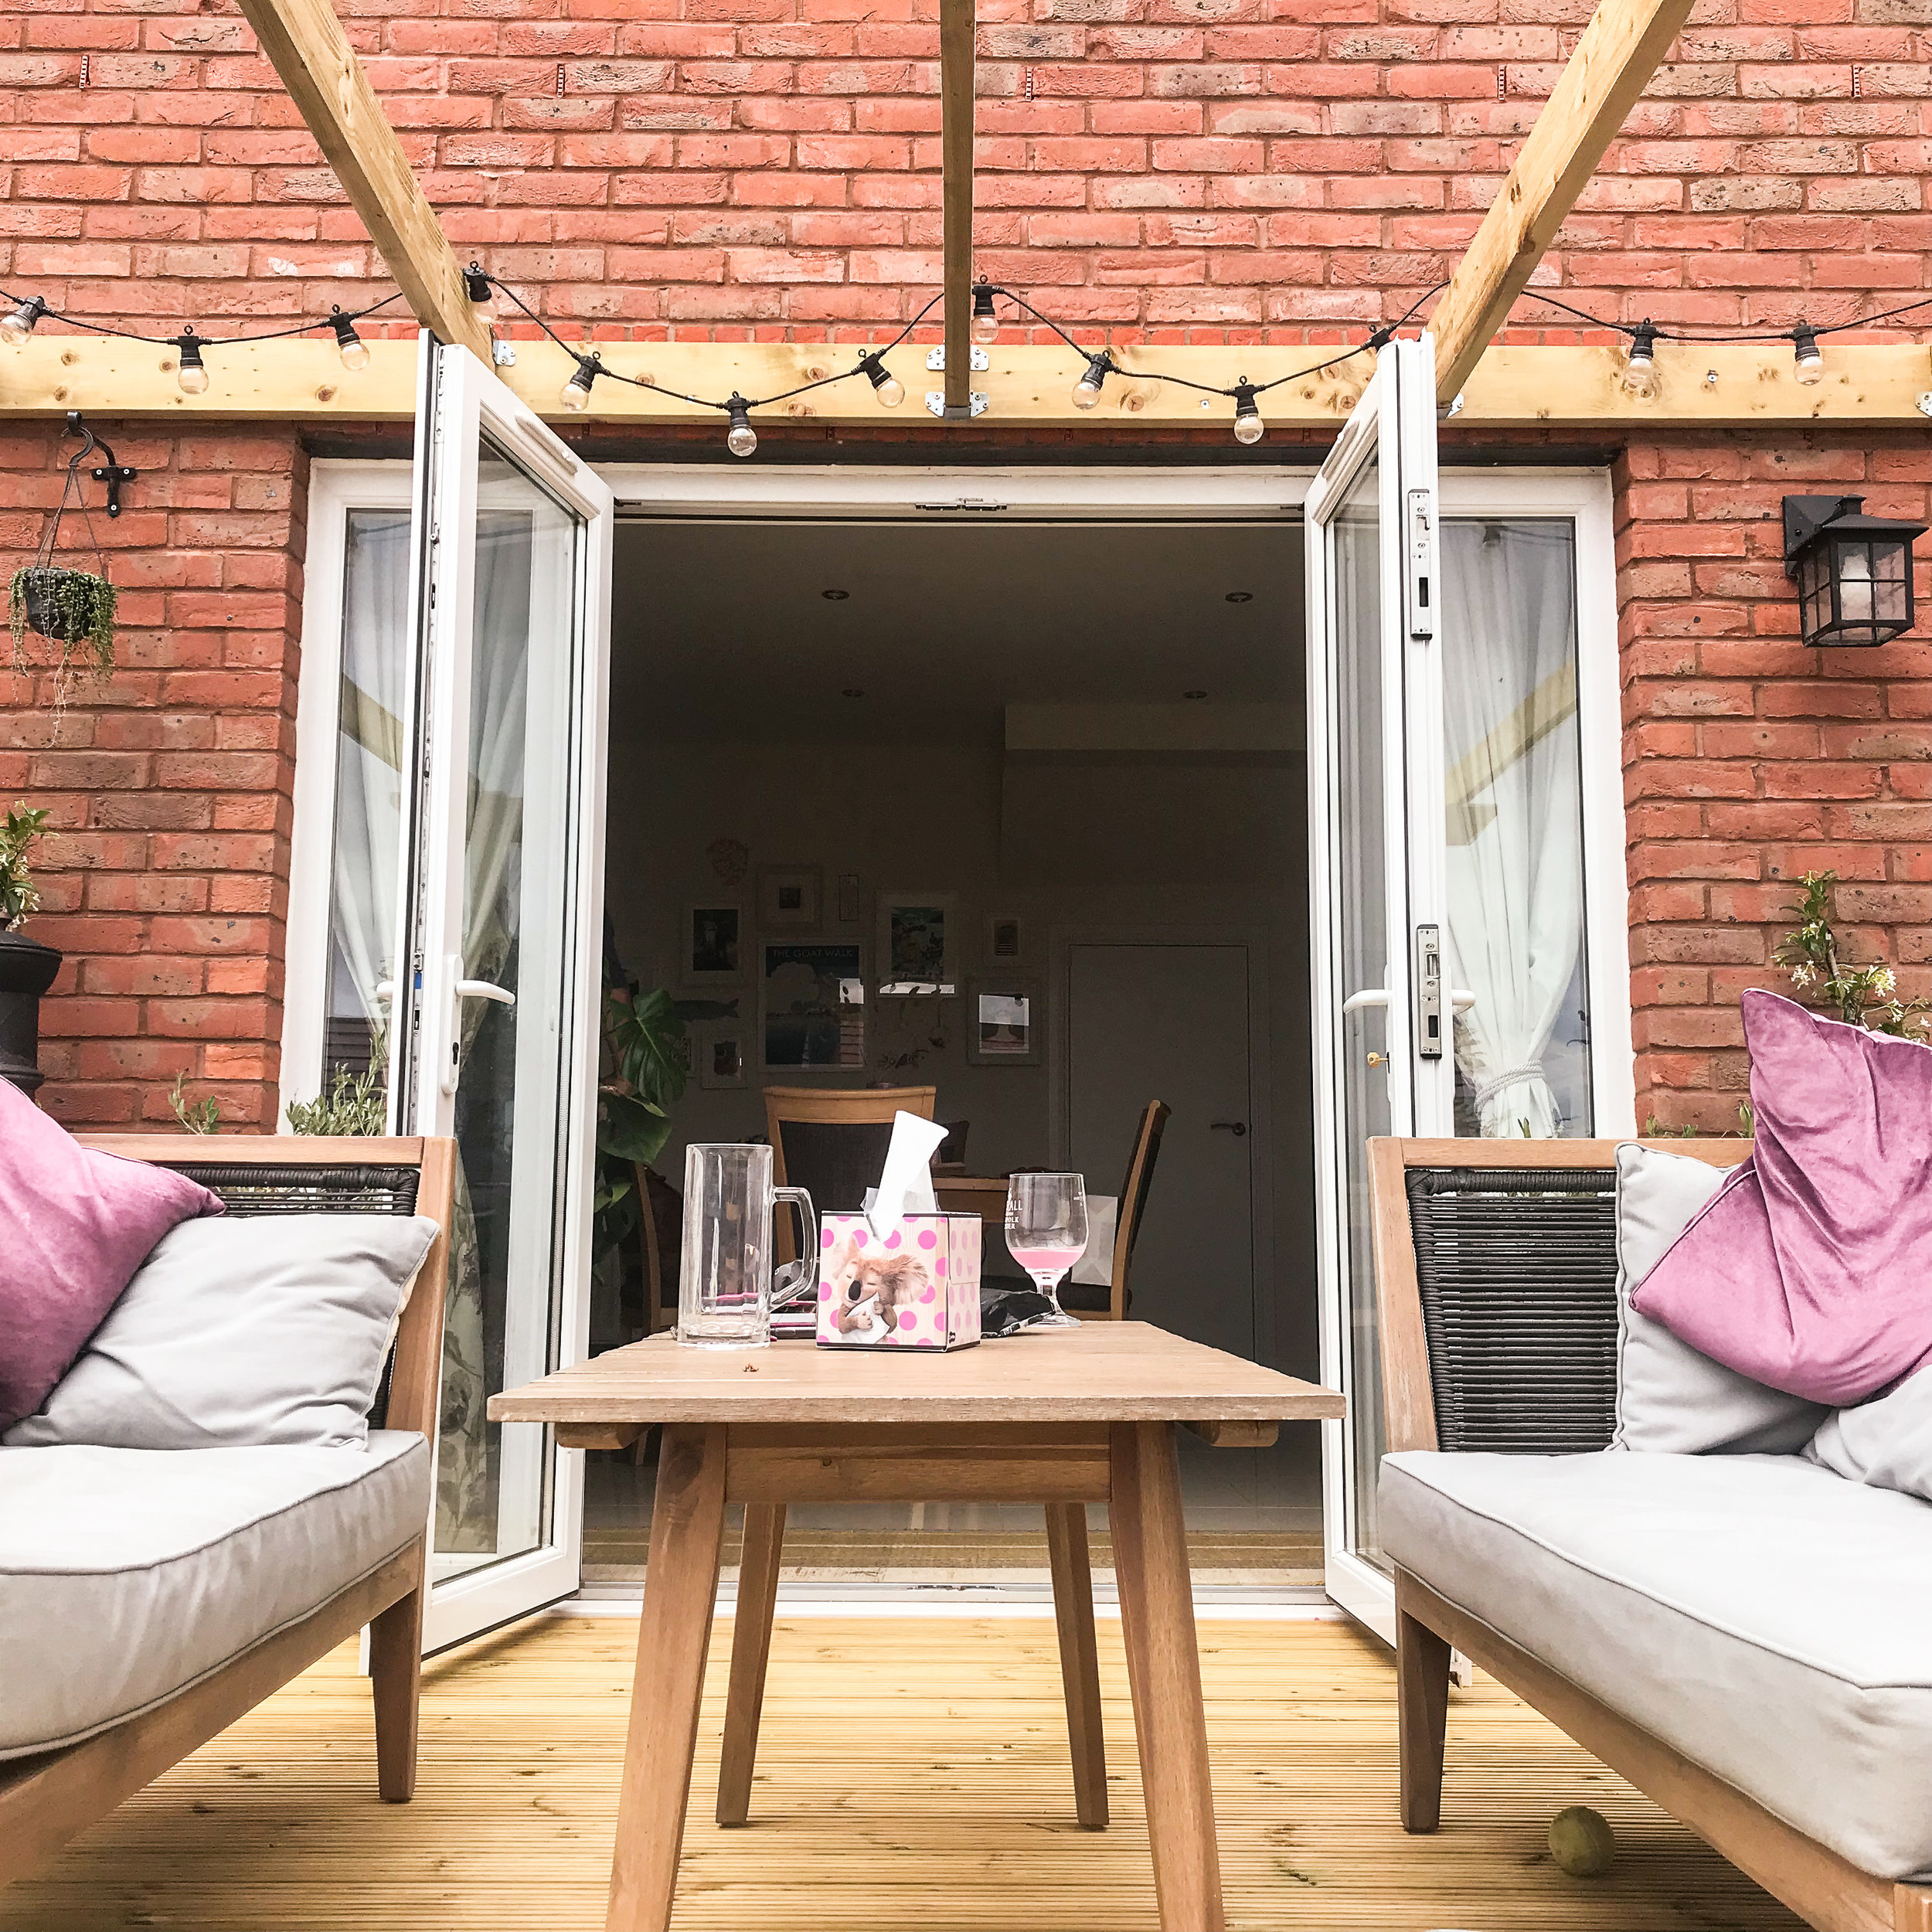 Working from the deck (when I was ill…hence TISSUES!)